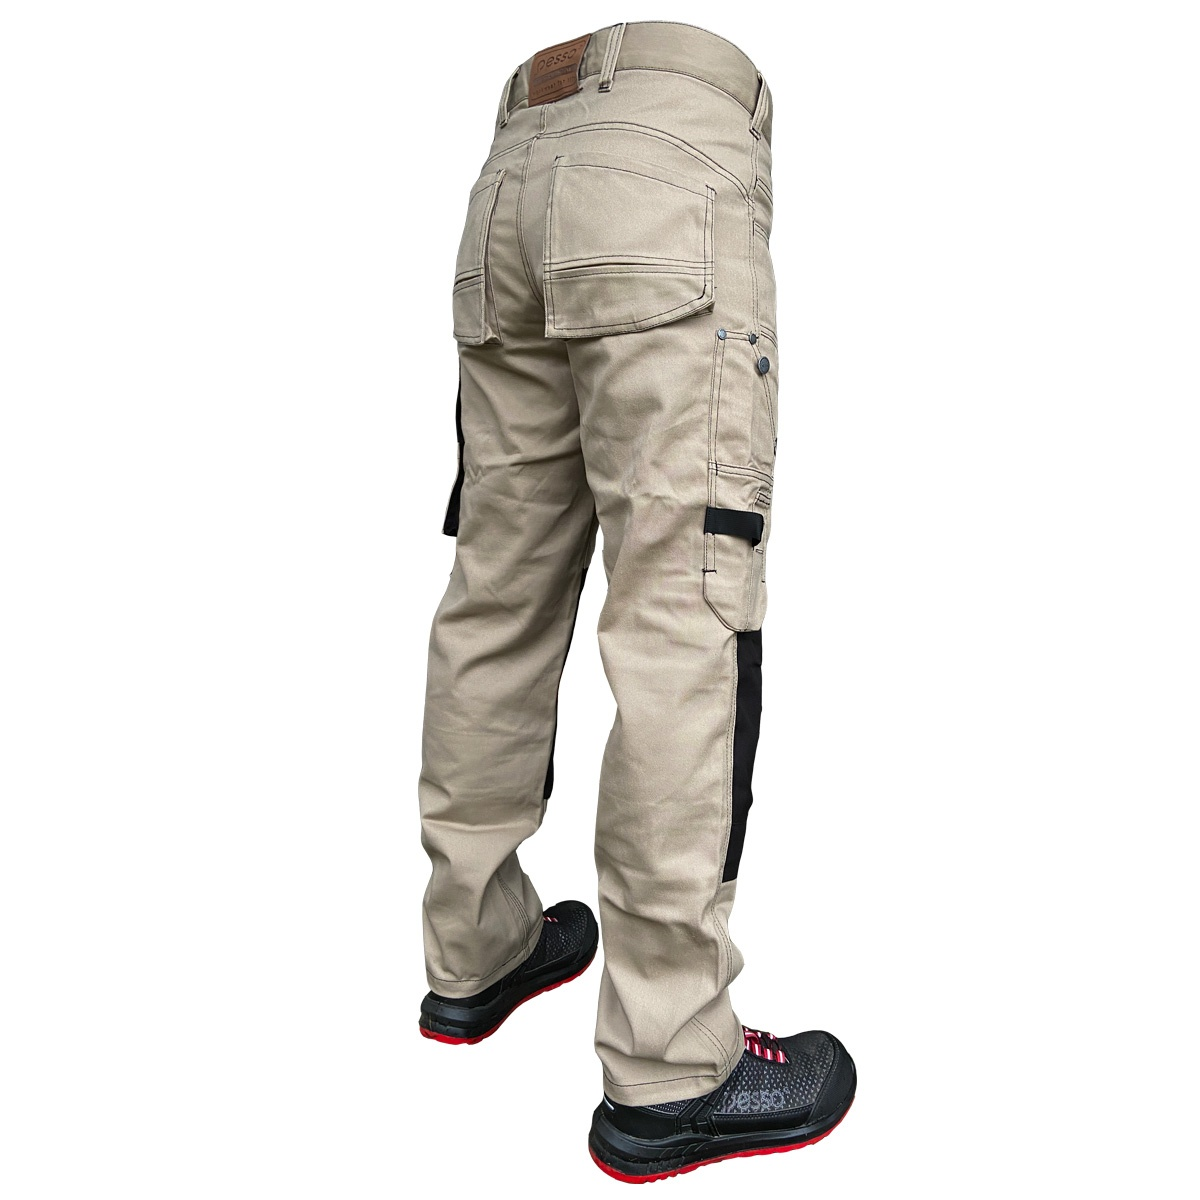 Work Trousers Winter Thermo Pants Canvas 320 Waist Trousers Work Trousers Workwear